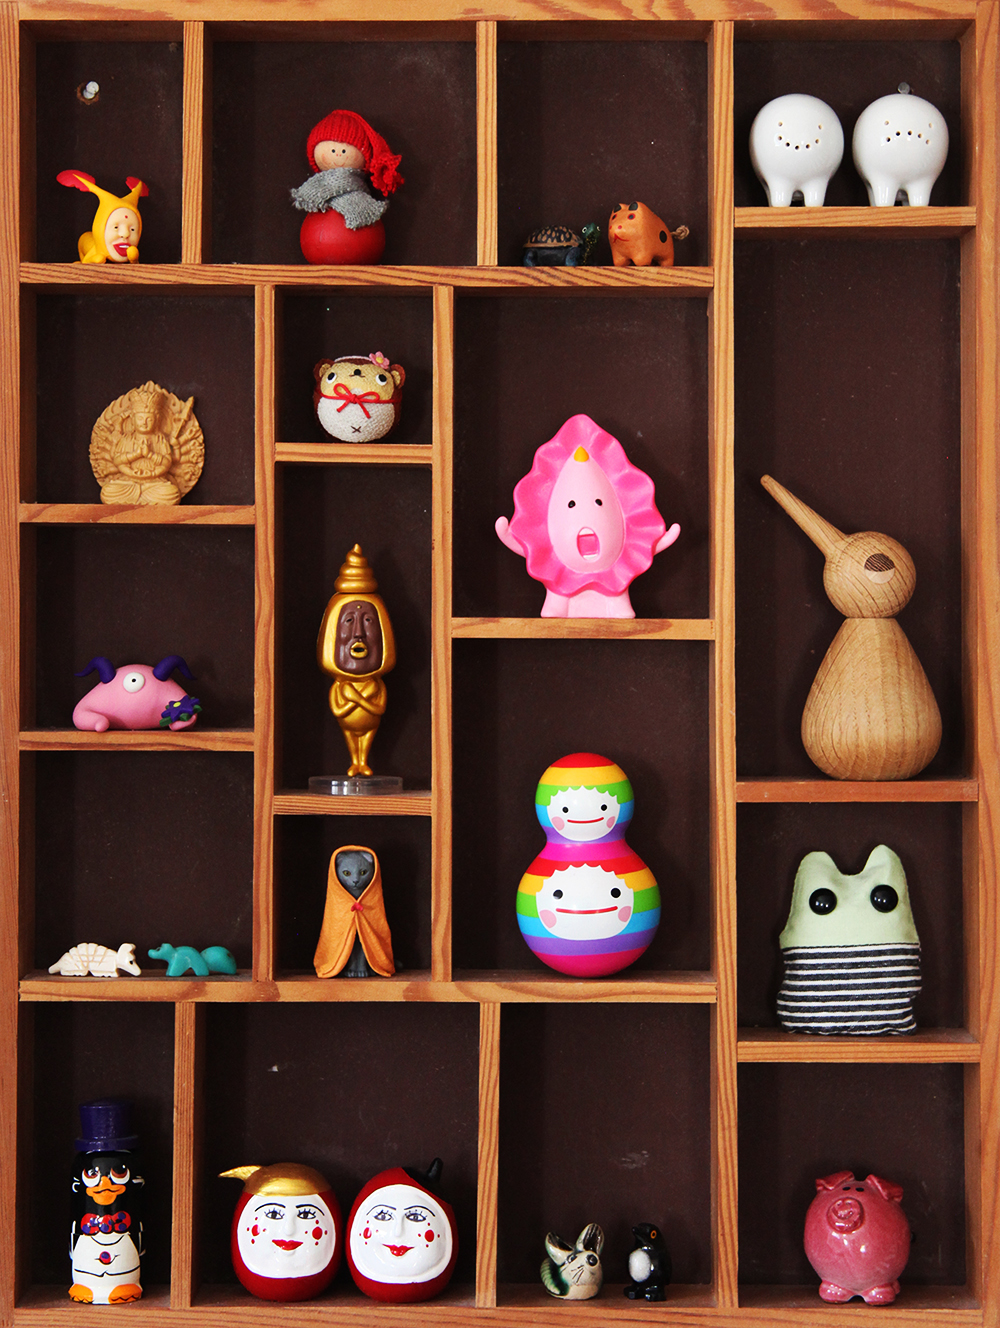 - Knick knack box in David and his husband's home displaying curious objects collected over the years.